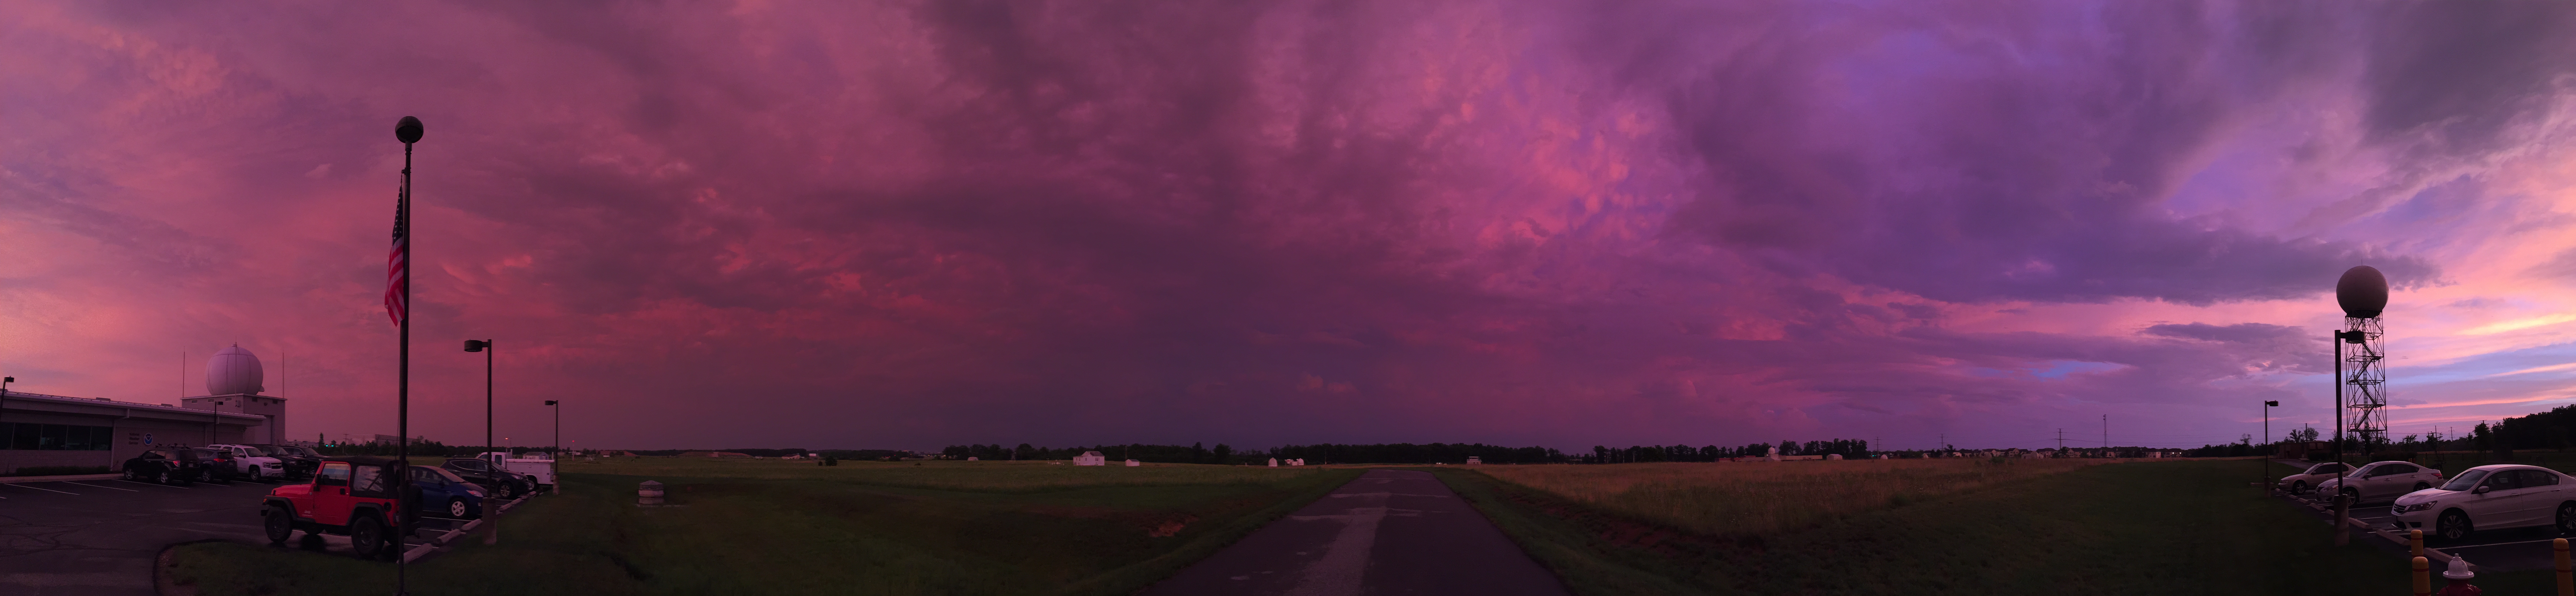 File 2015 06 23 20 49 18 Pink And Purple Clouds Near Sunset An American Flag A Wsr 88d Doppler Radar And A Nws Upper Air Station At The National Weather